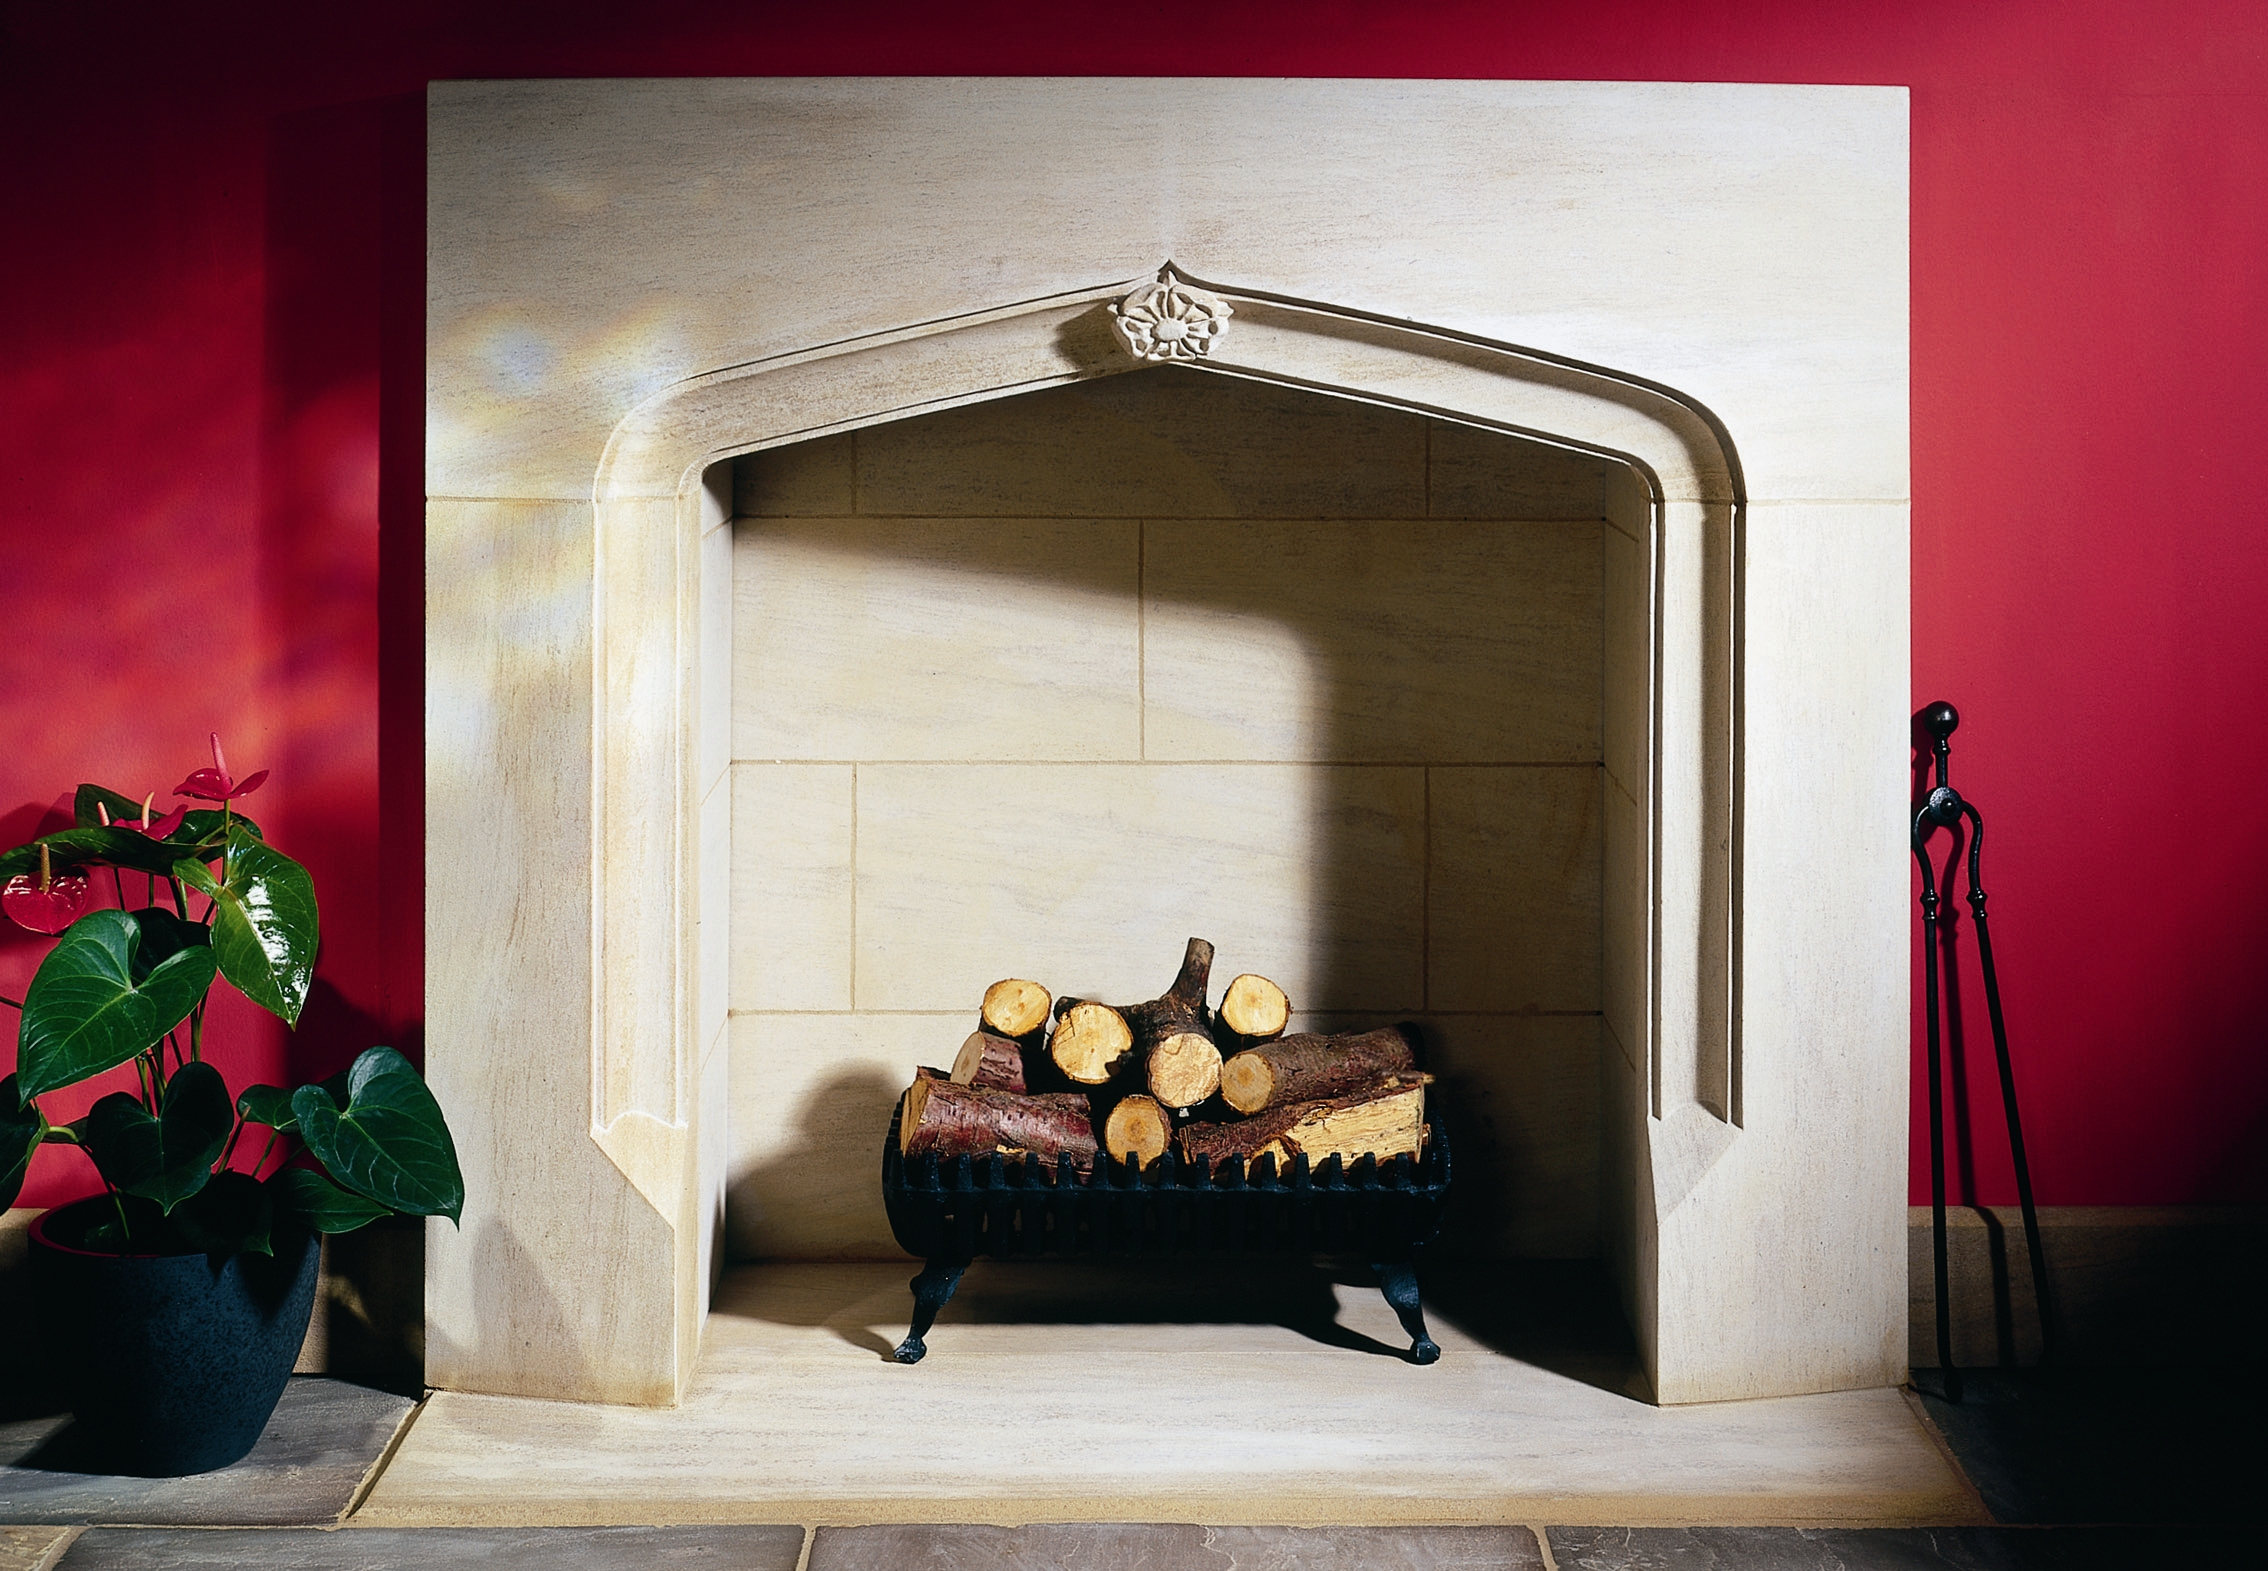 16. A modern interpretation of a Gothic fireplace in Ancaster Hard White stone, with carved rose detail – Derbyshire